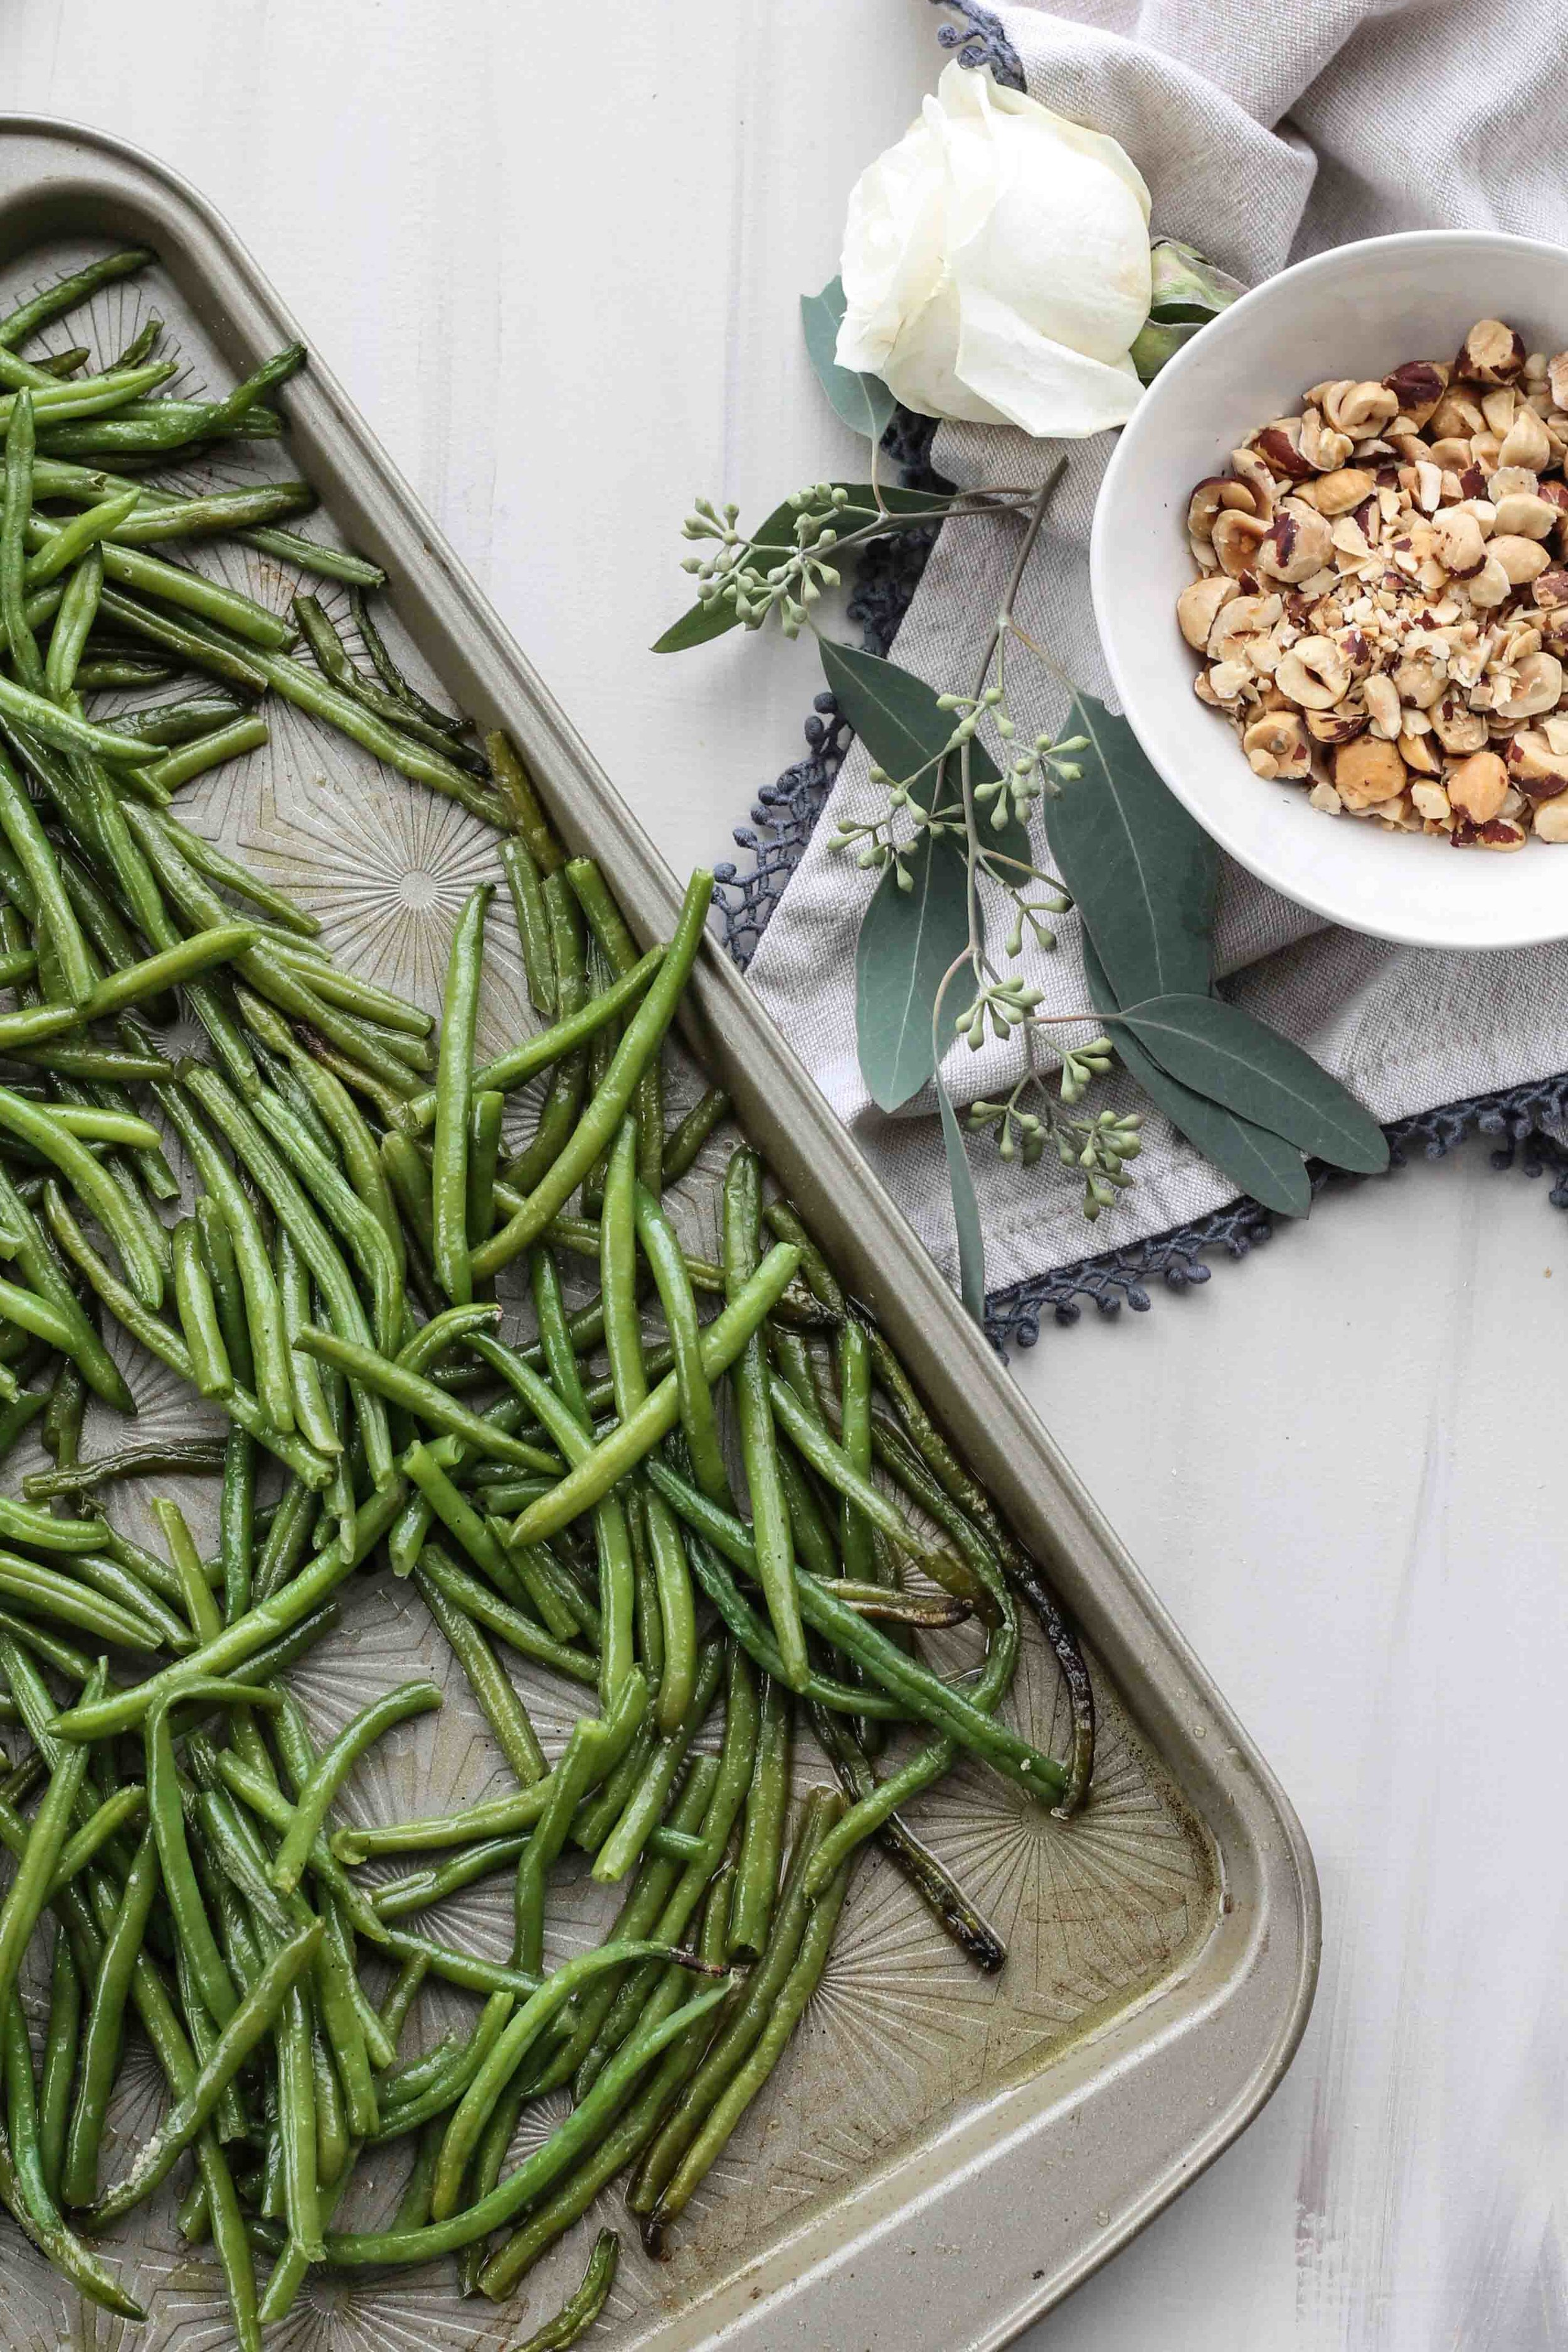 Haricot Vert with Roasted Garlic Chèvre & Toasted Hazelnuts [www.pedanticfoodie.com]